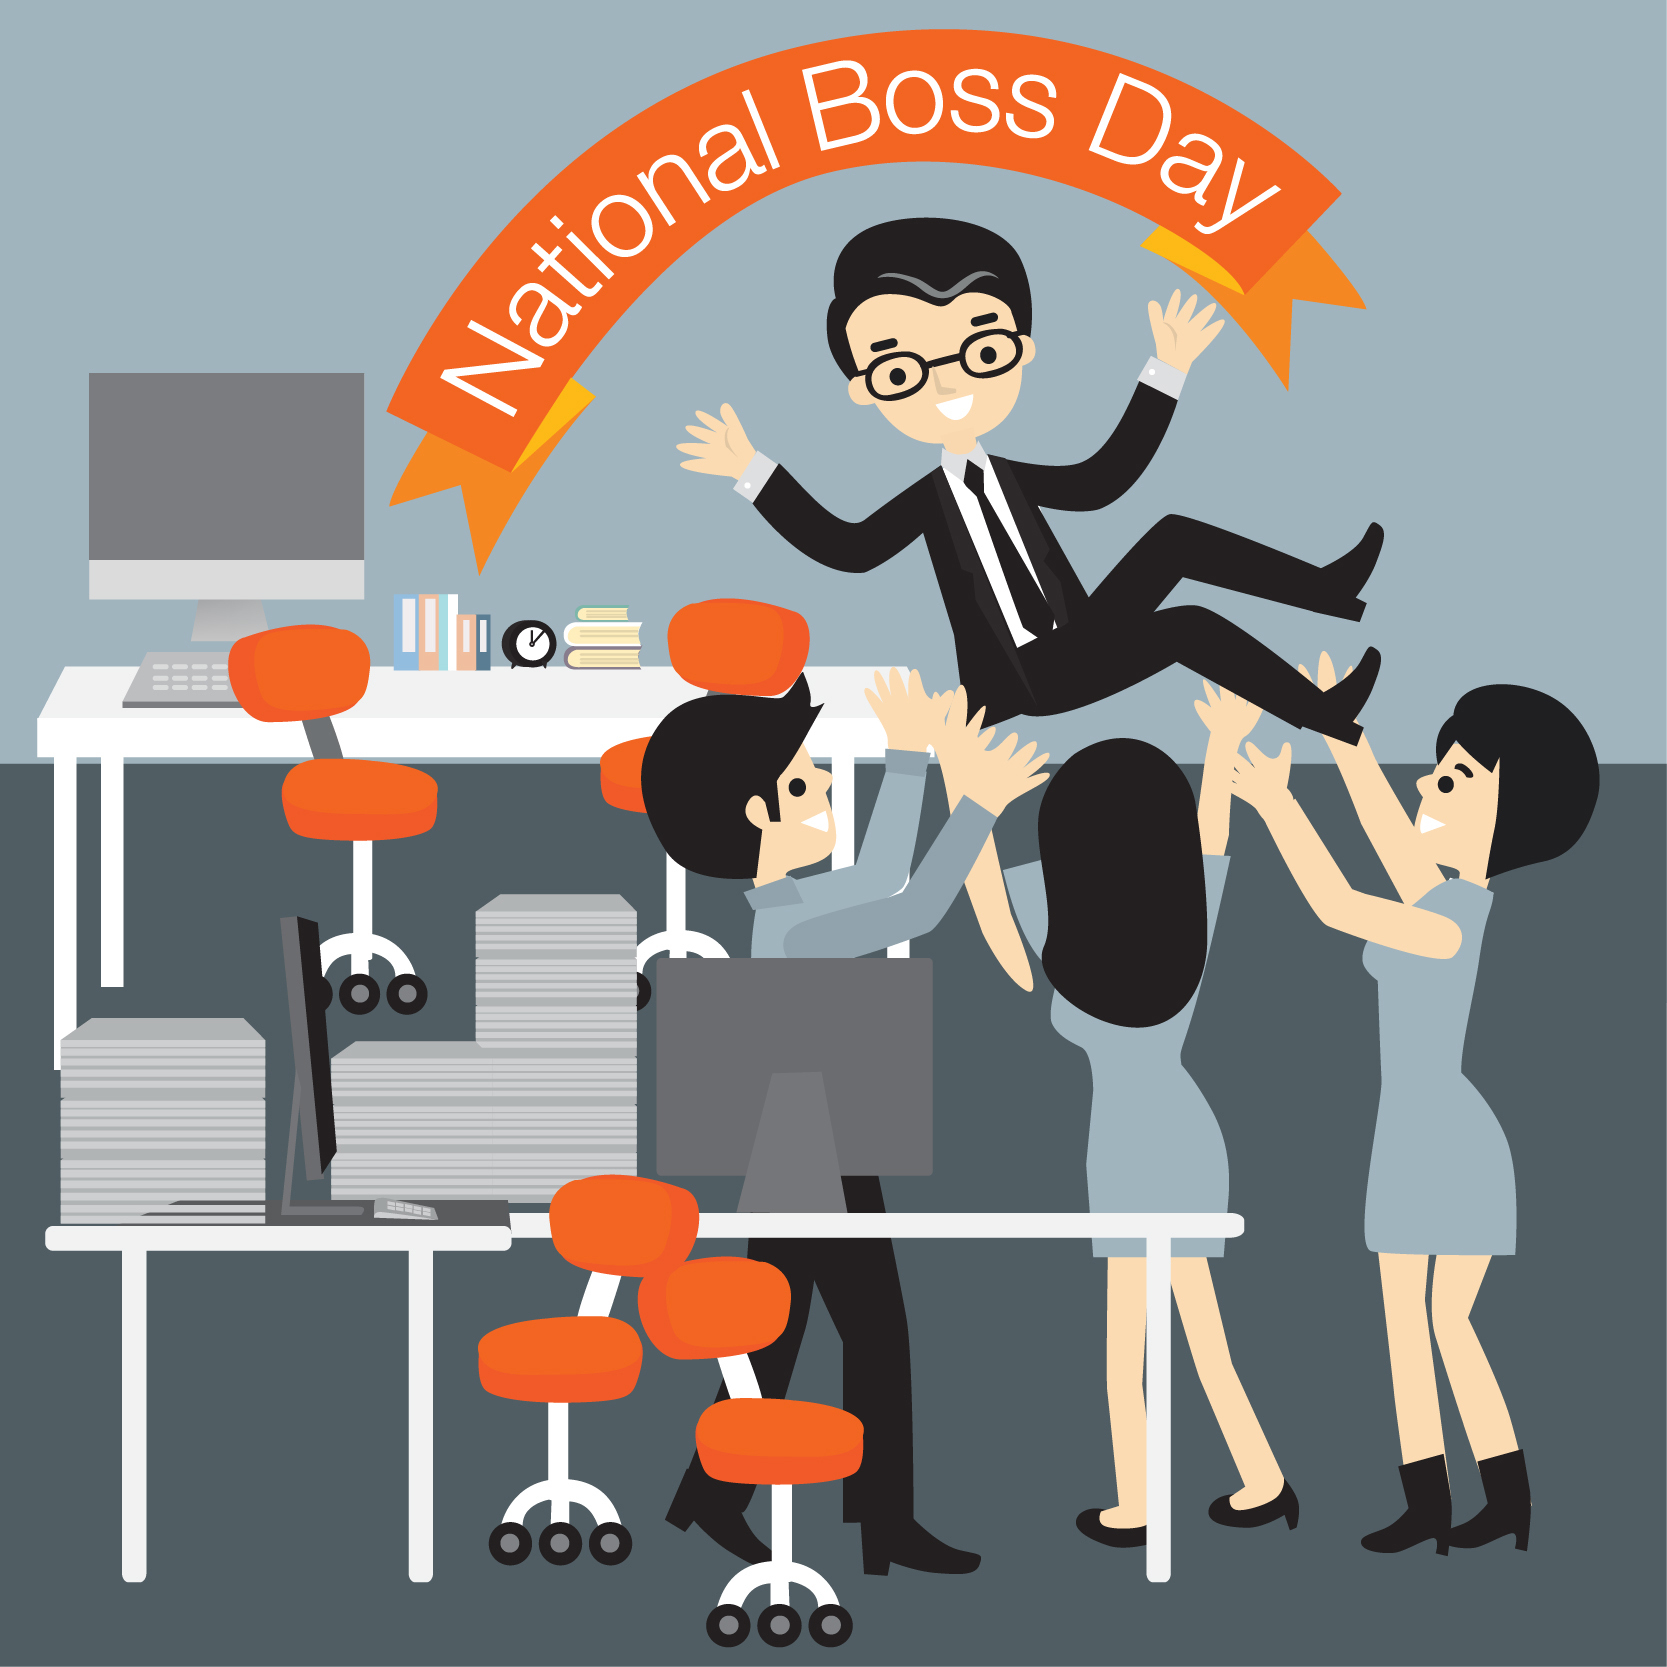 NationalBossDay: Gifts Every Good Manager Deserves